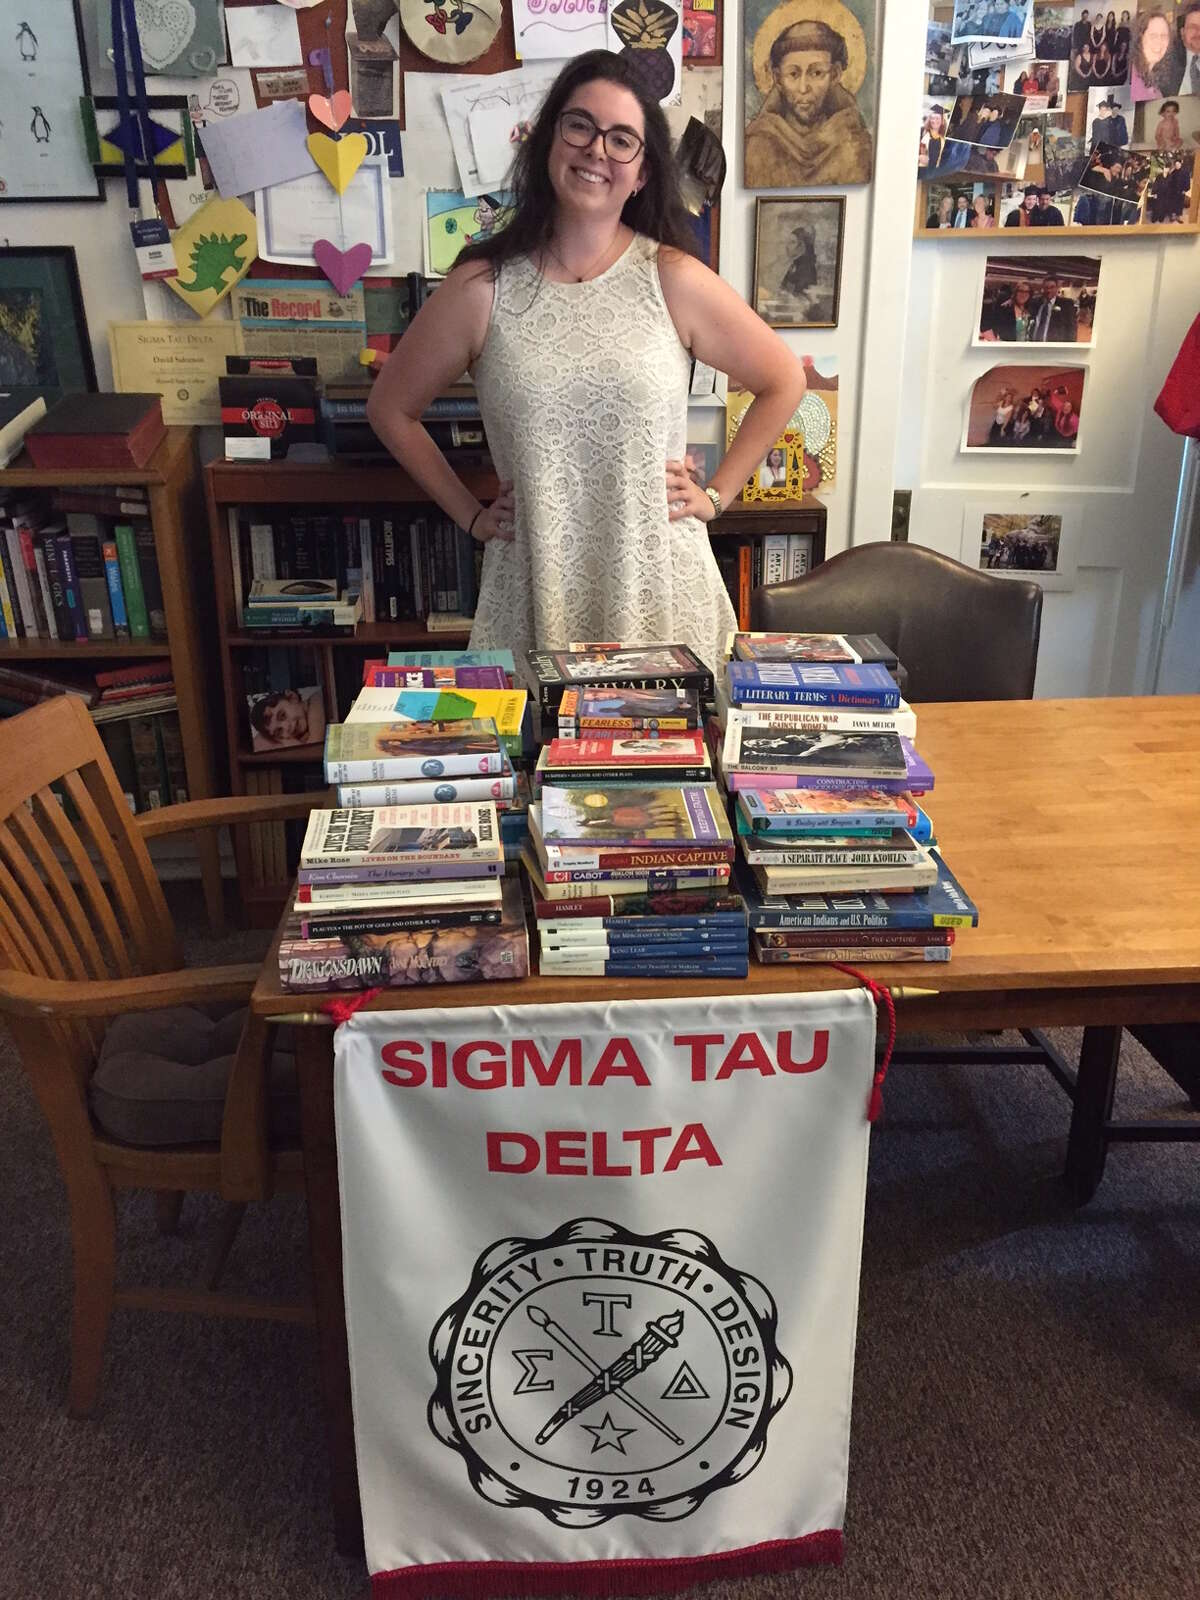 Alpha Alpha Sigma, the Russell Sage College chapter of Sigma Tau Delta, the English Honor Society, has sent out about 160 books for middle school students to Rural America Initiatives in Rapid City, S.D. Seen here is Kelly Shanahan, Sigma Tau Delta president at Russell Sage. Faculty advisor is Professor David A. Salomon, who previously taught in South Dakota. The non-profit group's mission is to partner with whole families to help American Indian children and youth acquire tools to thrive in the contemporary environment and to support their cultural values. The website is http://www.ruralamericainitiatives.org/